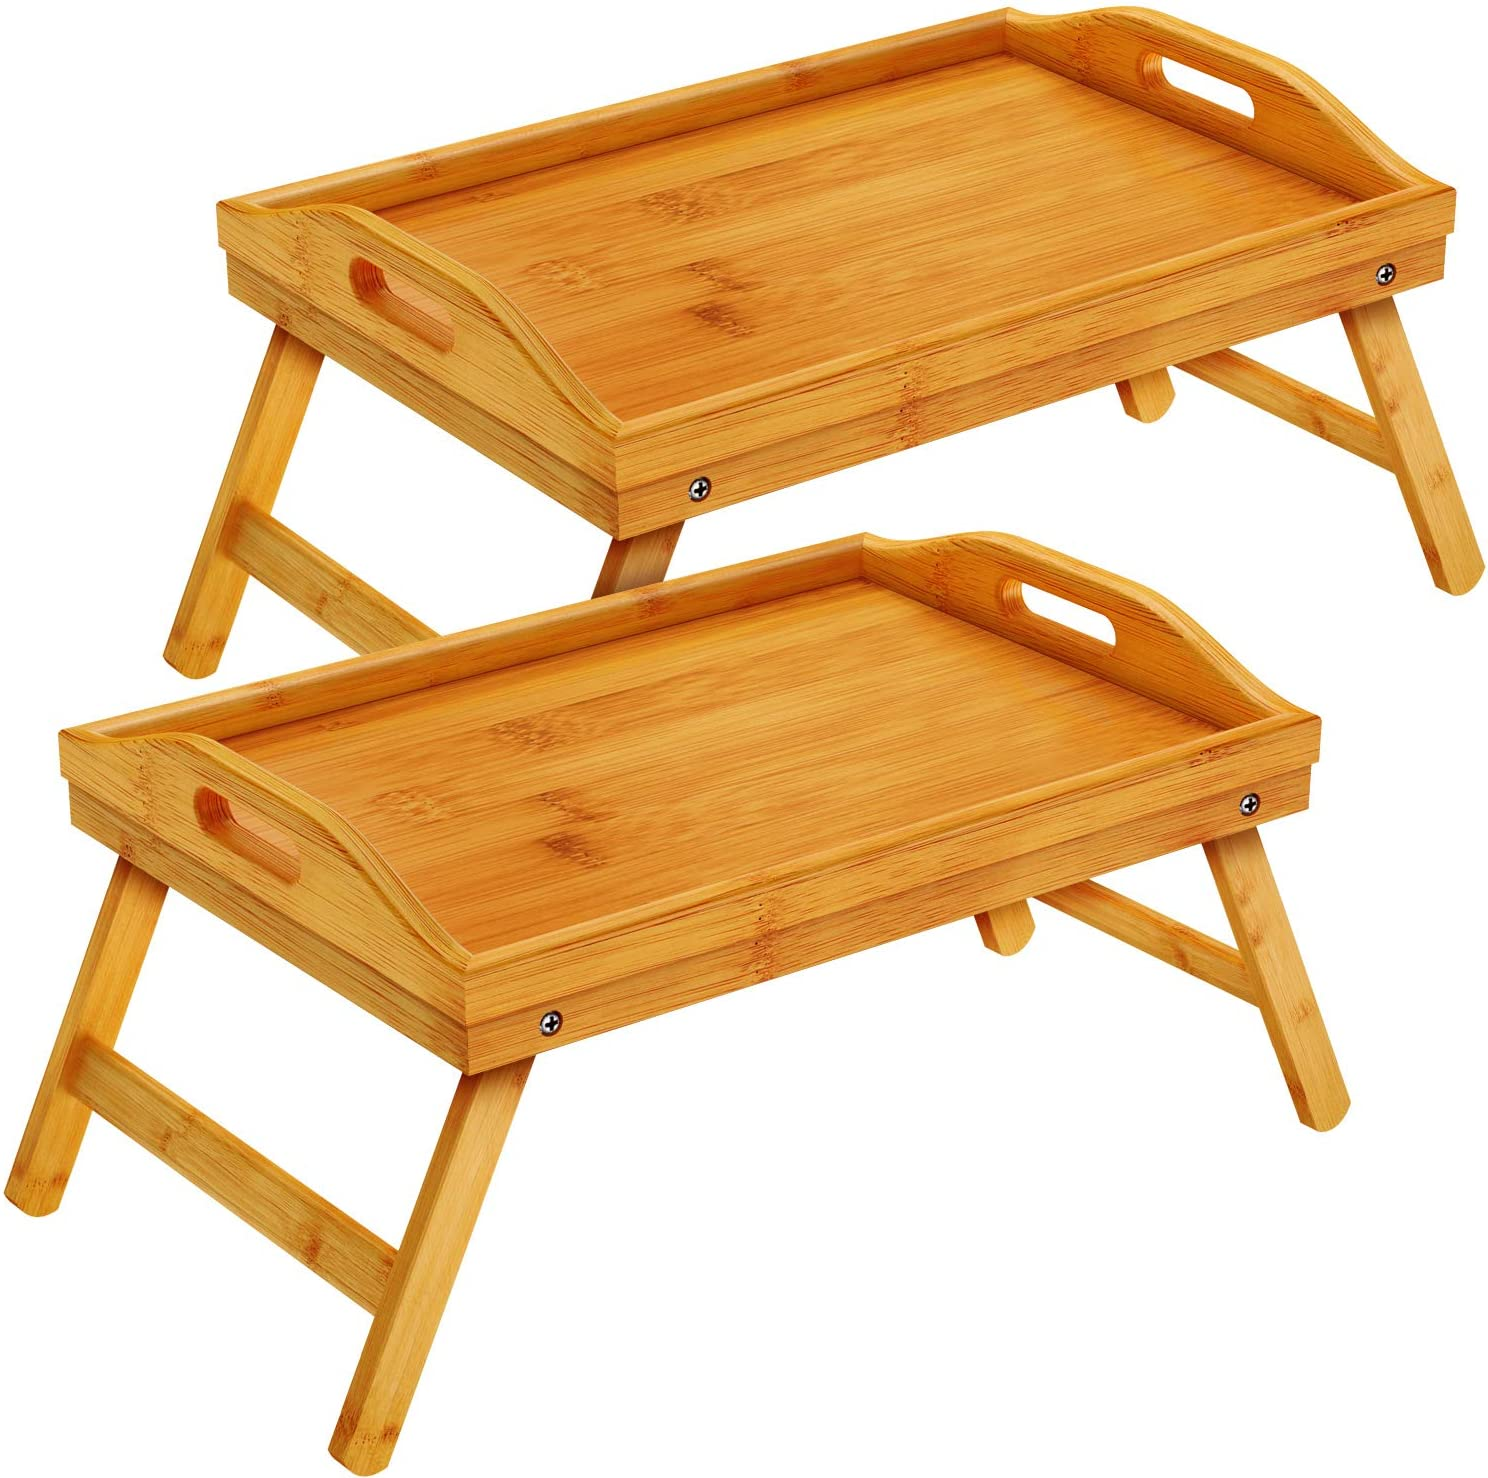 Pipishell Bamboo 贈答 Bed Tray Table 特価 Breakfast with Legs Tr Foldable